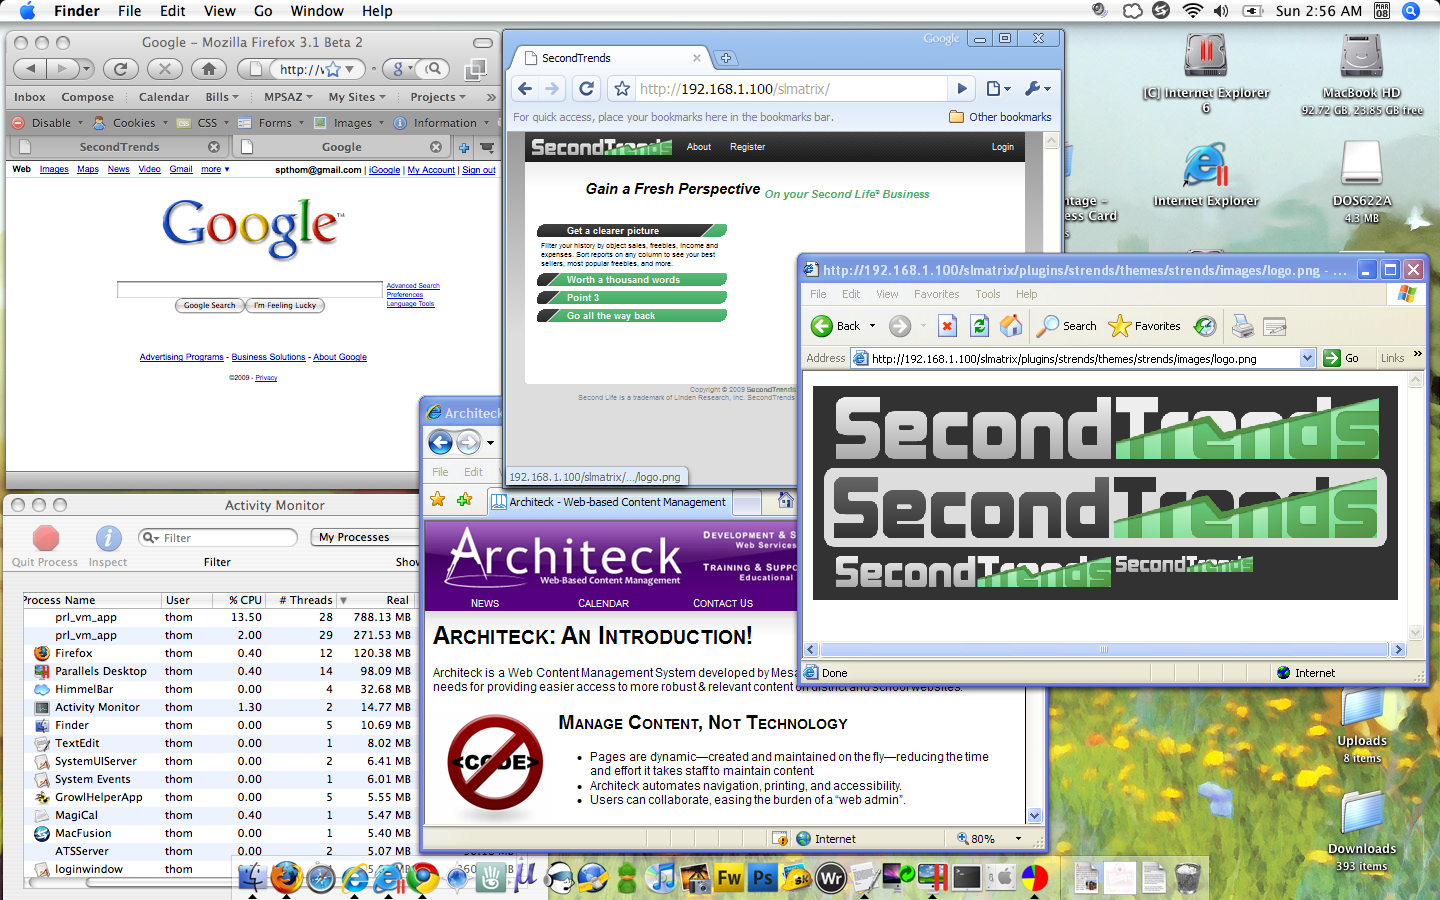 Clockwise from Top Left: Firefox (Host), Chrome (Guest 1), IE6 (Guest 2), IE7 (Guest 1)